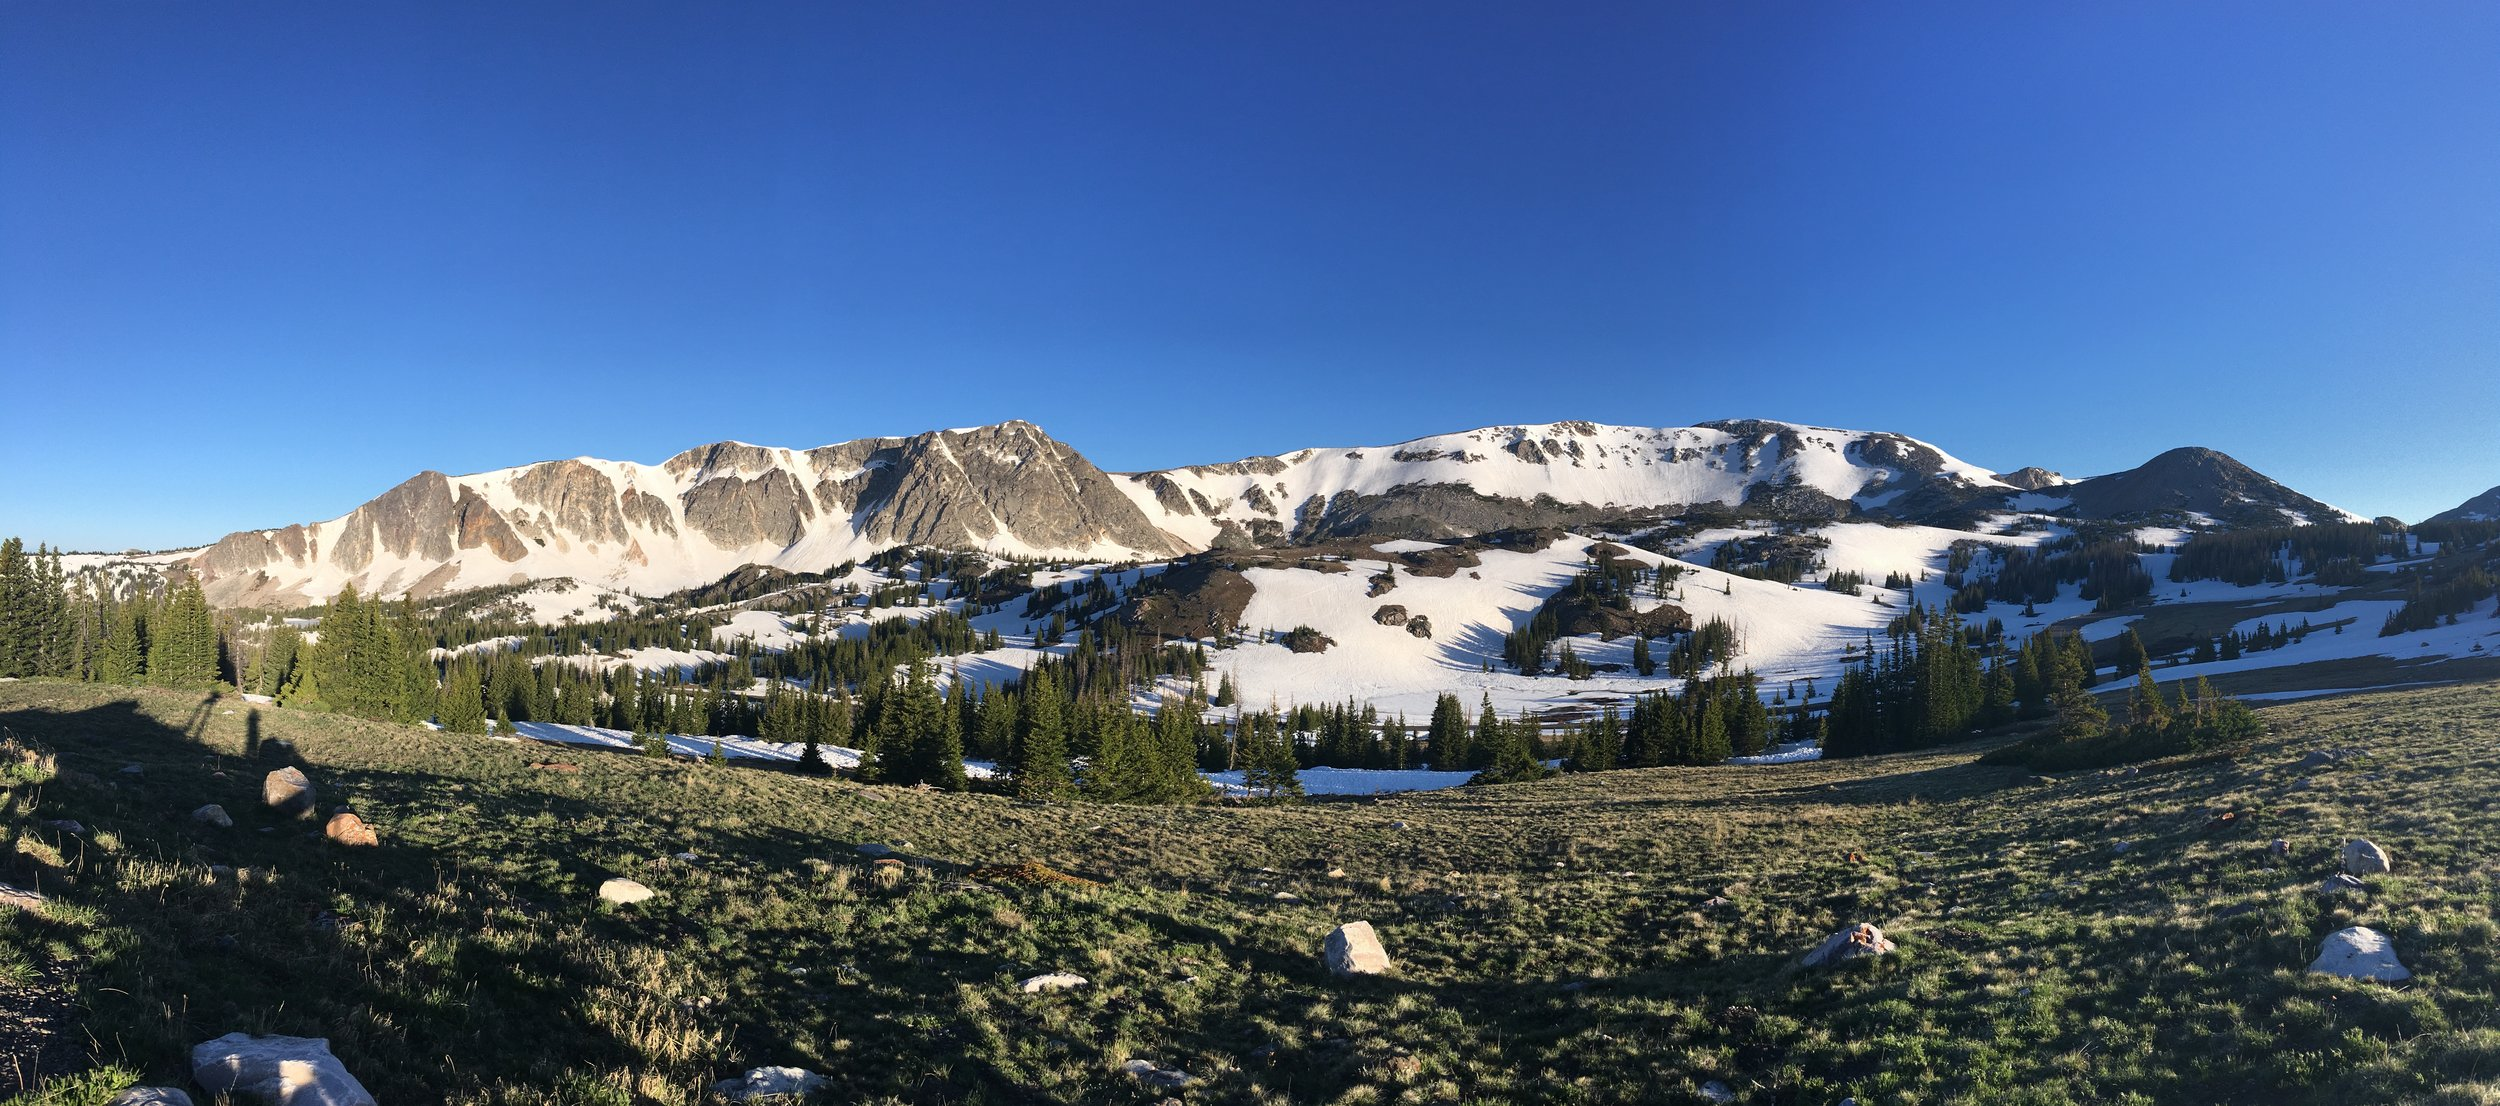 The full view of Medicine Bow Peak from the overlook on Highway 130.